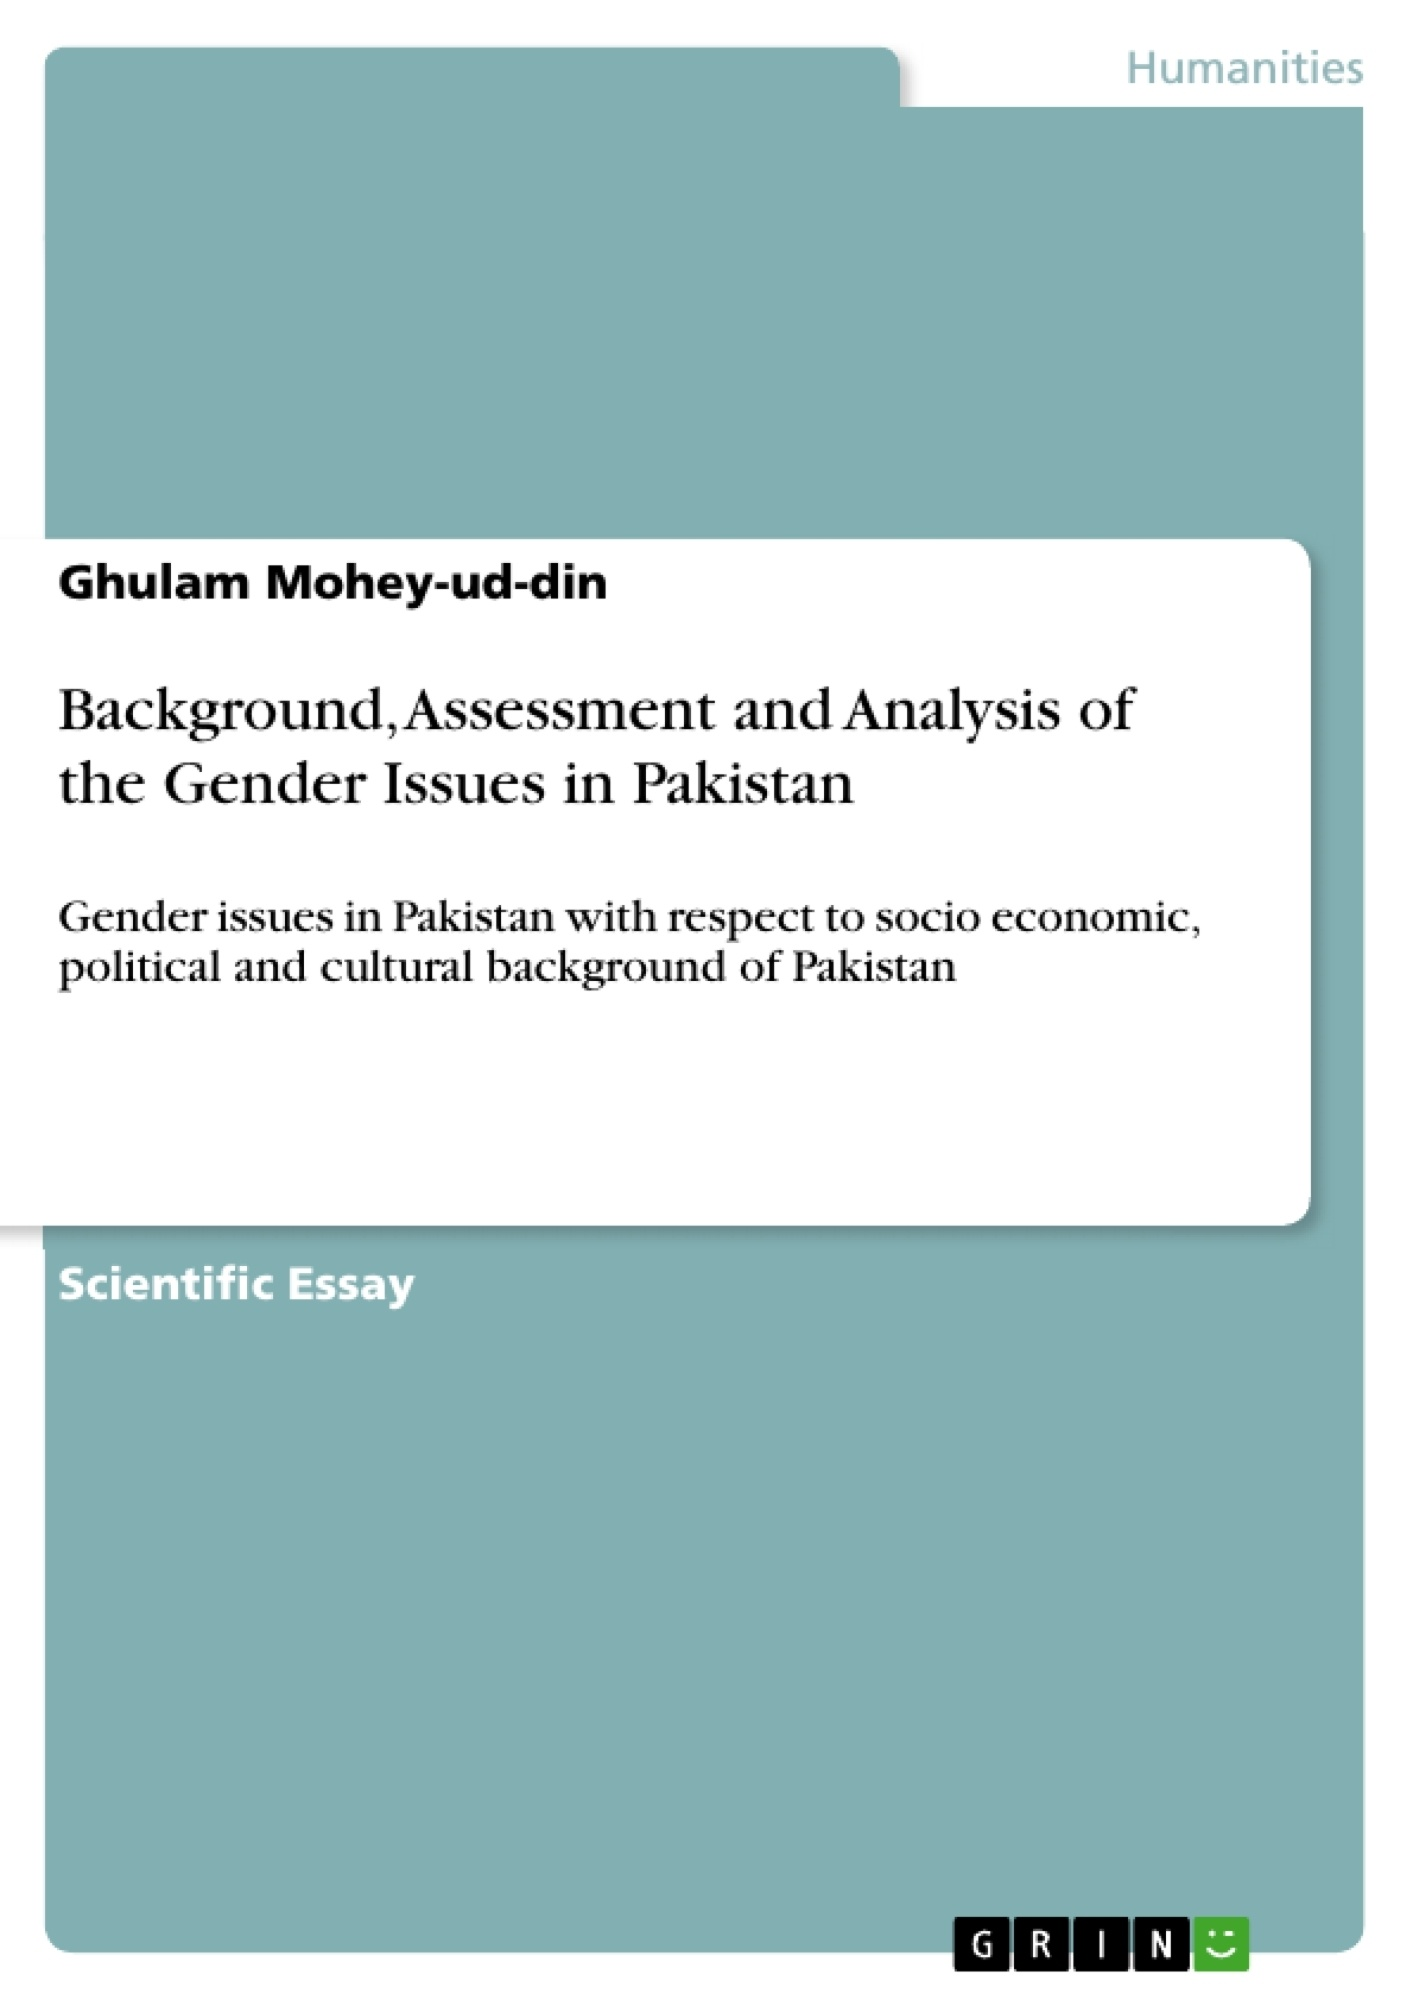 Background, Assessment and Analysis of the Gender Issues in